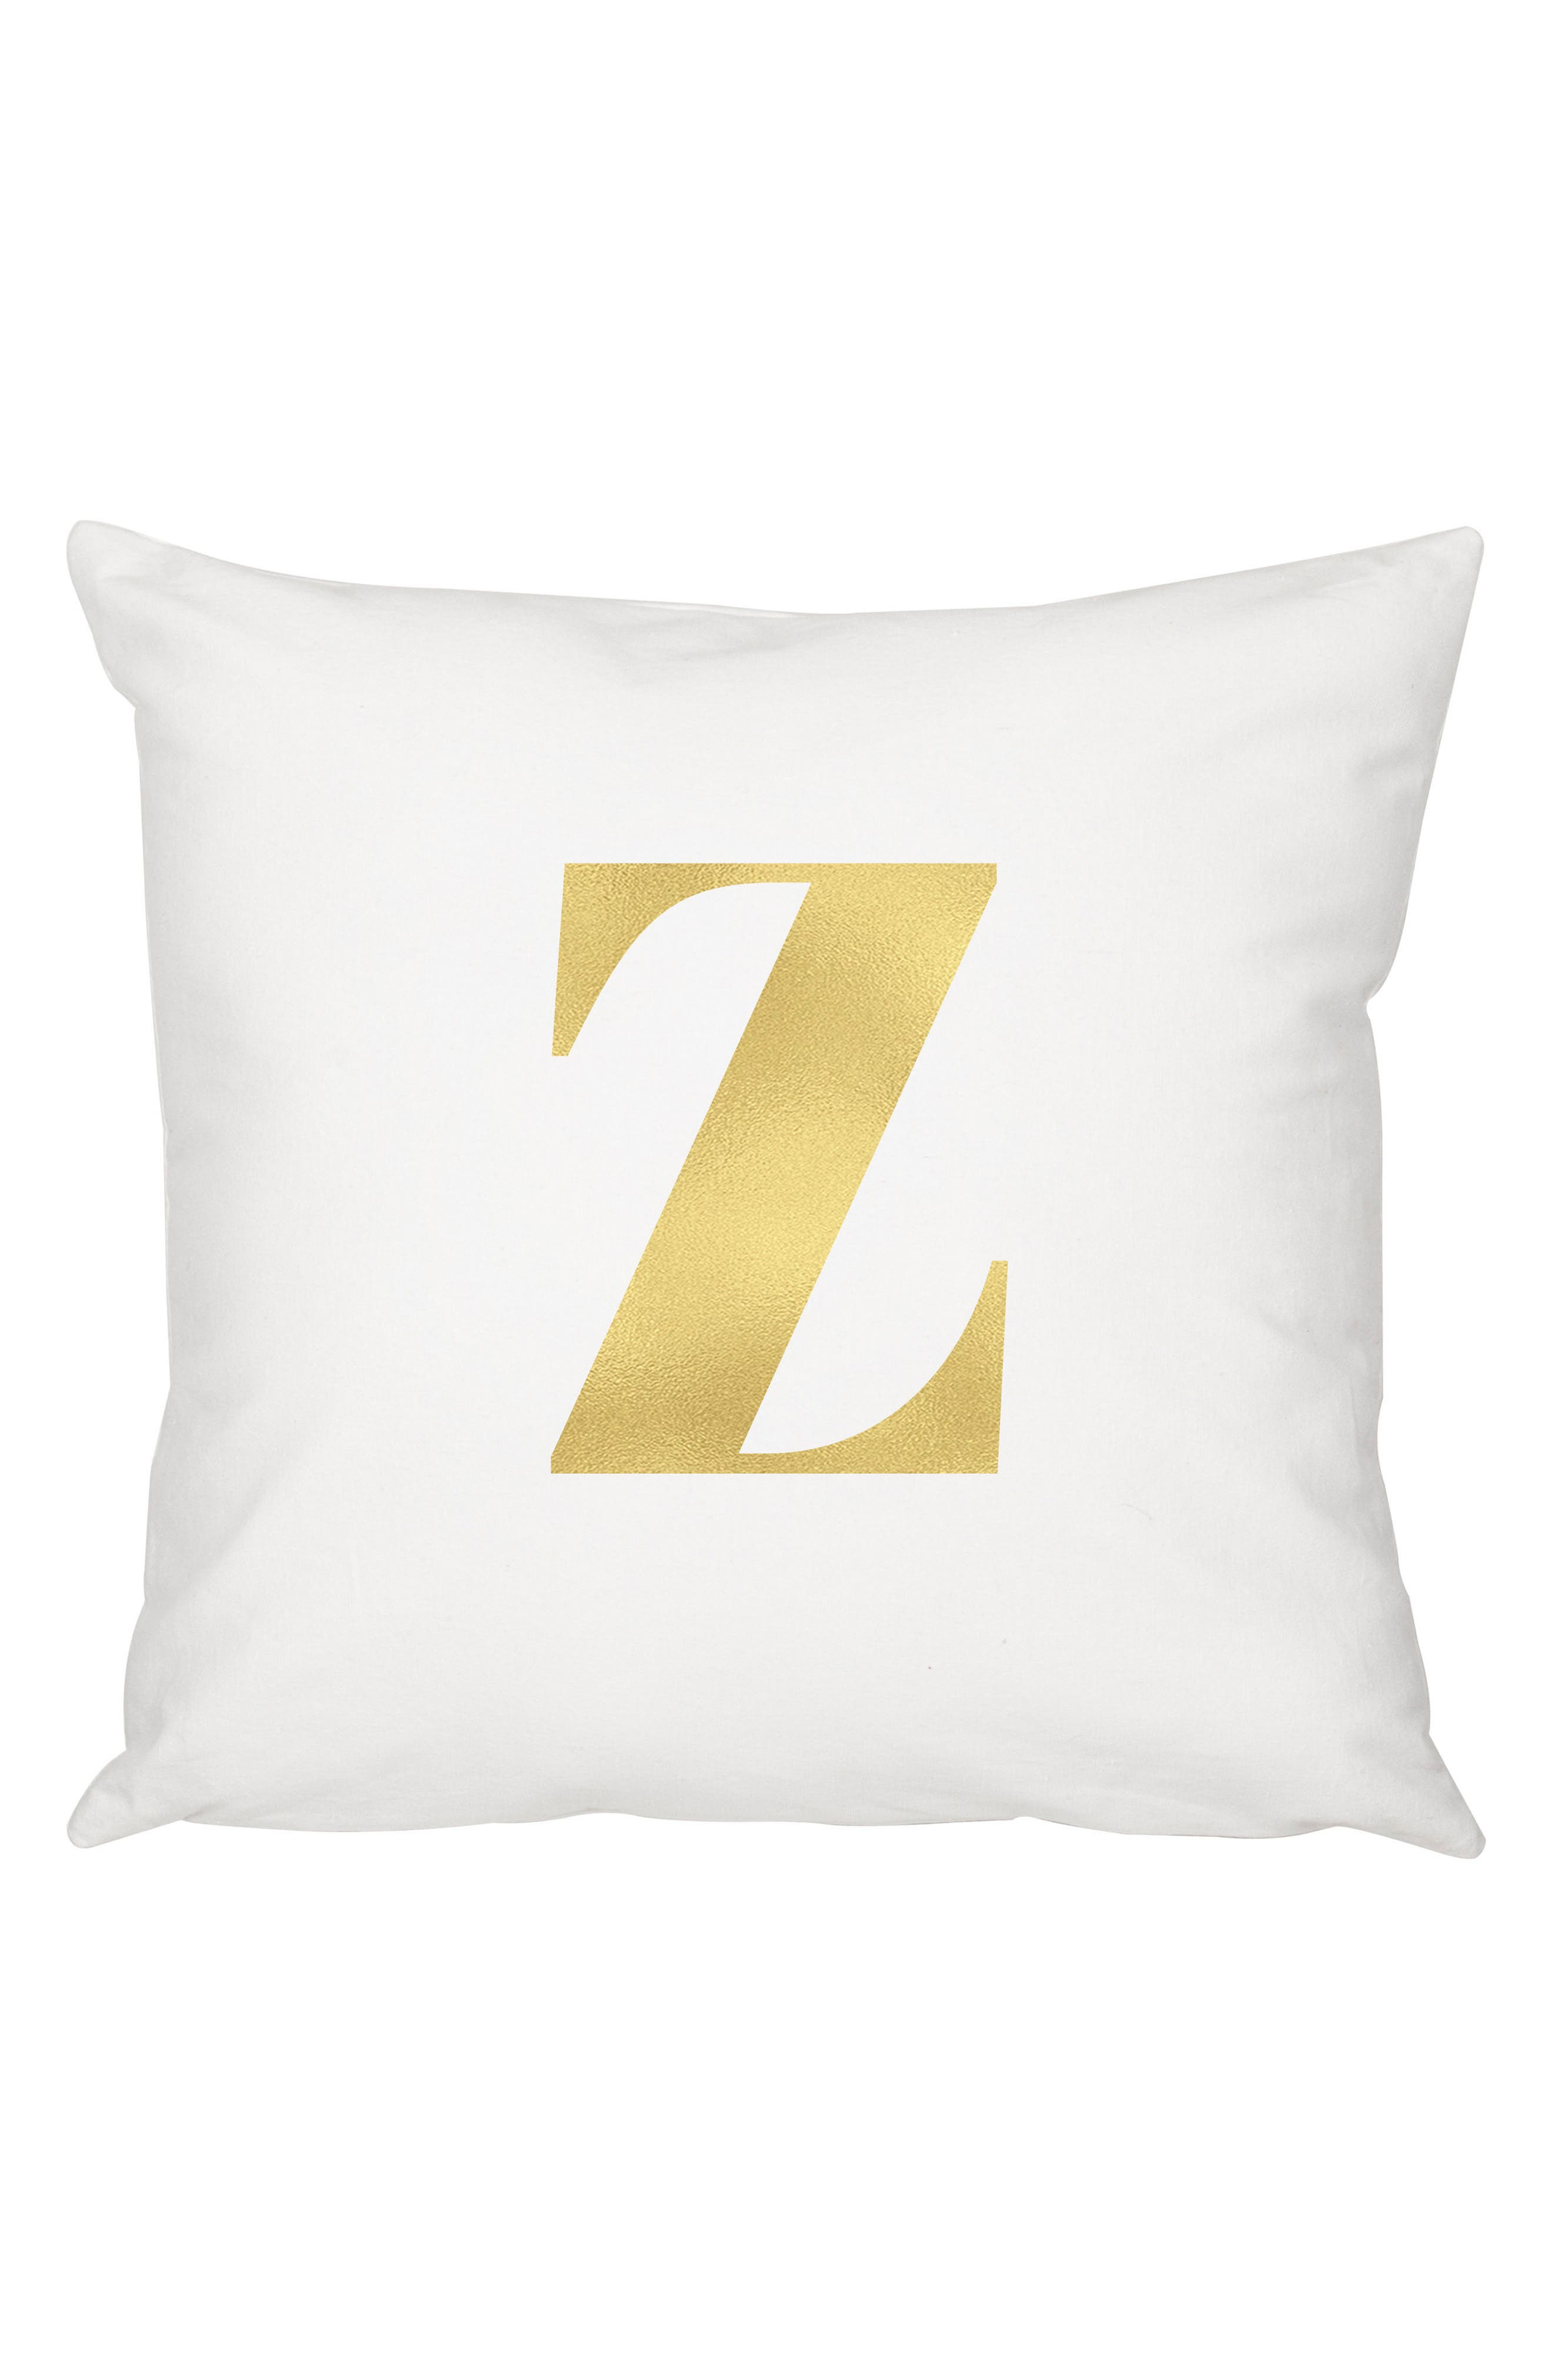 Alternate Image 1 Selected - Cathy's Concepts Monogram Accent Pillow